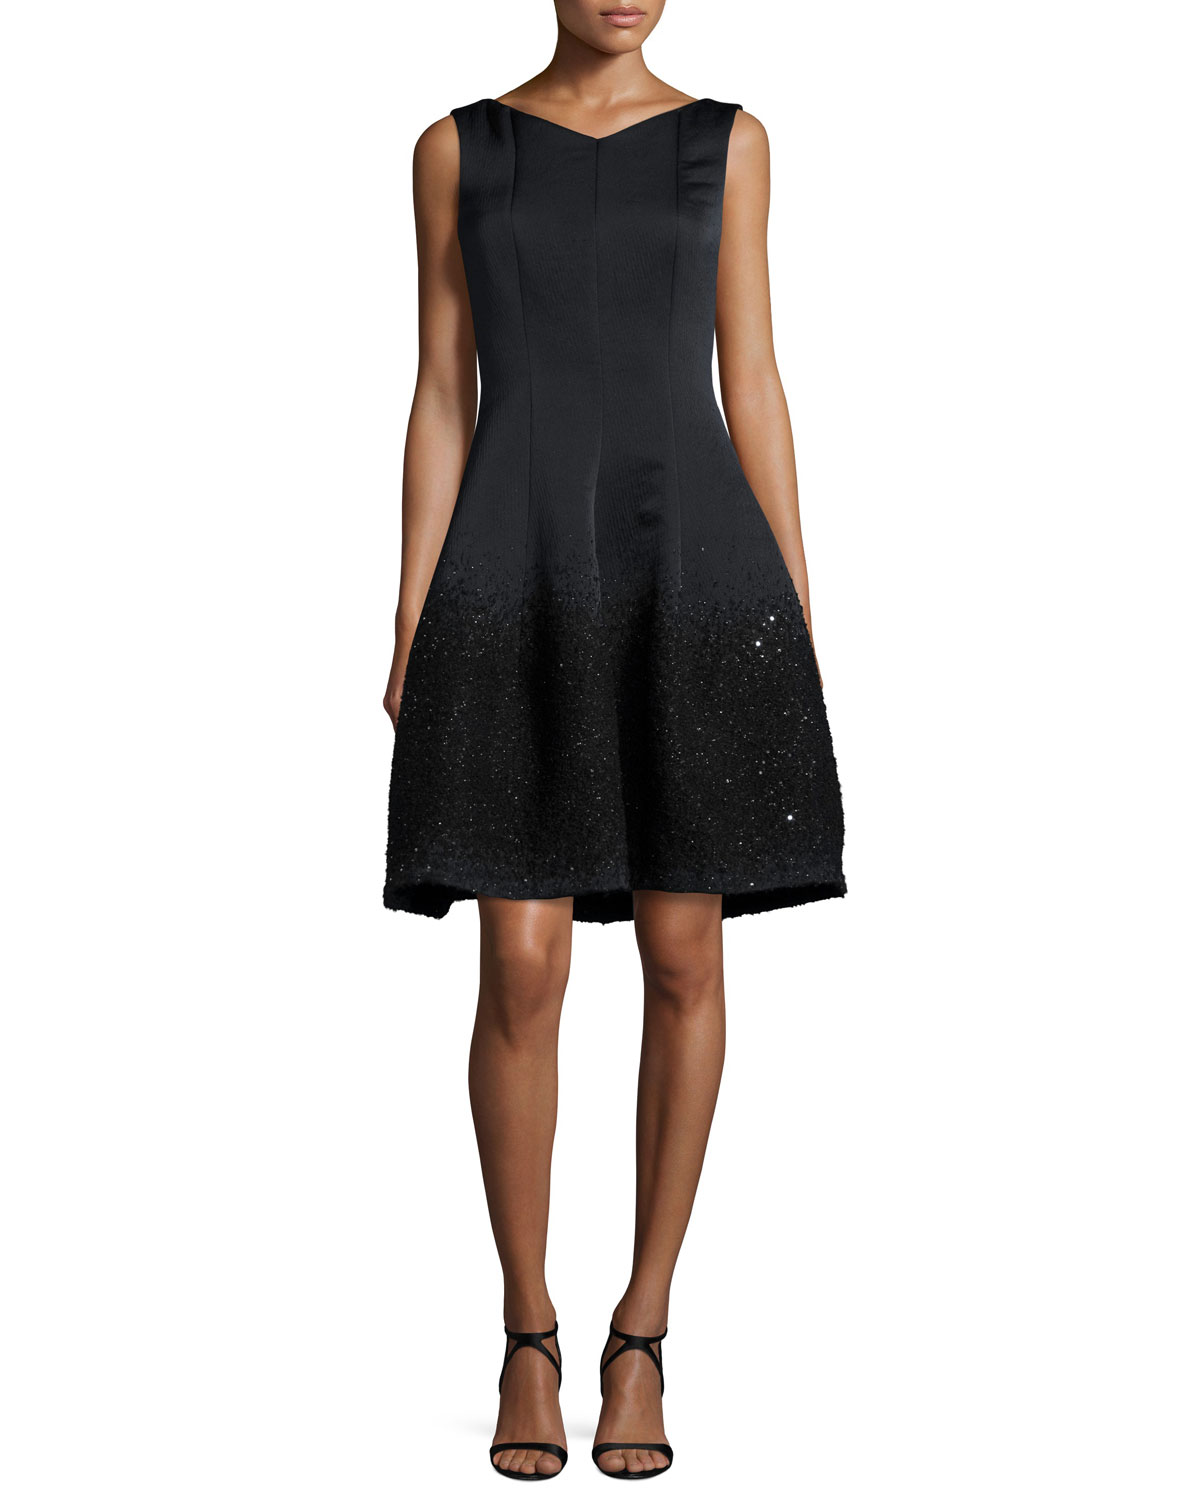 Gomma Degrade-Embellished Cocktail Dress, Black